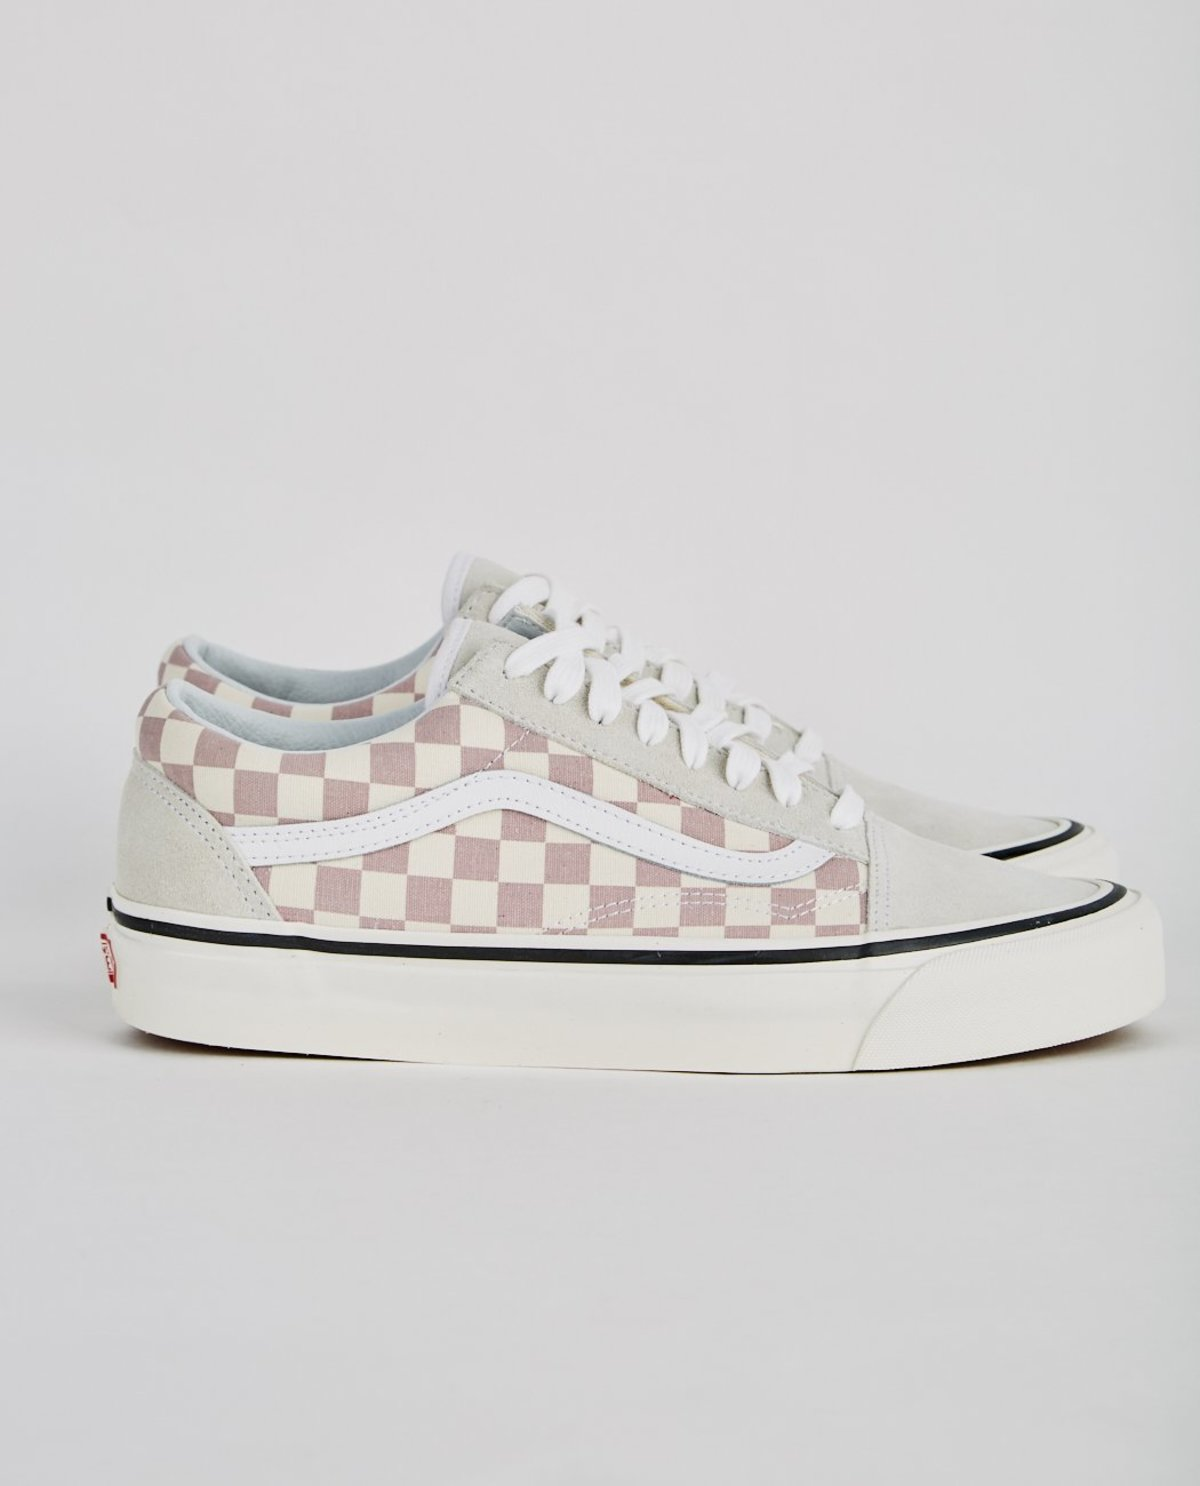 38c15ccea232 VANS AUTHENTIC 36 DX ANAHEIM FACTORY OLD SKOOL - MAUVE CHECKERBOARD ...